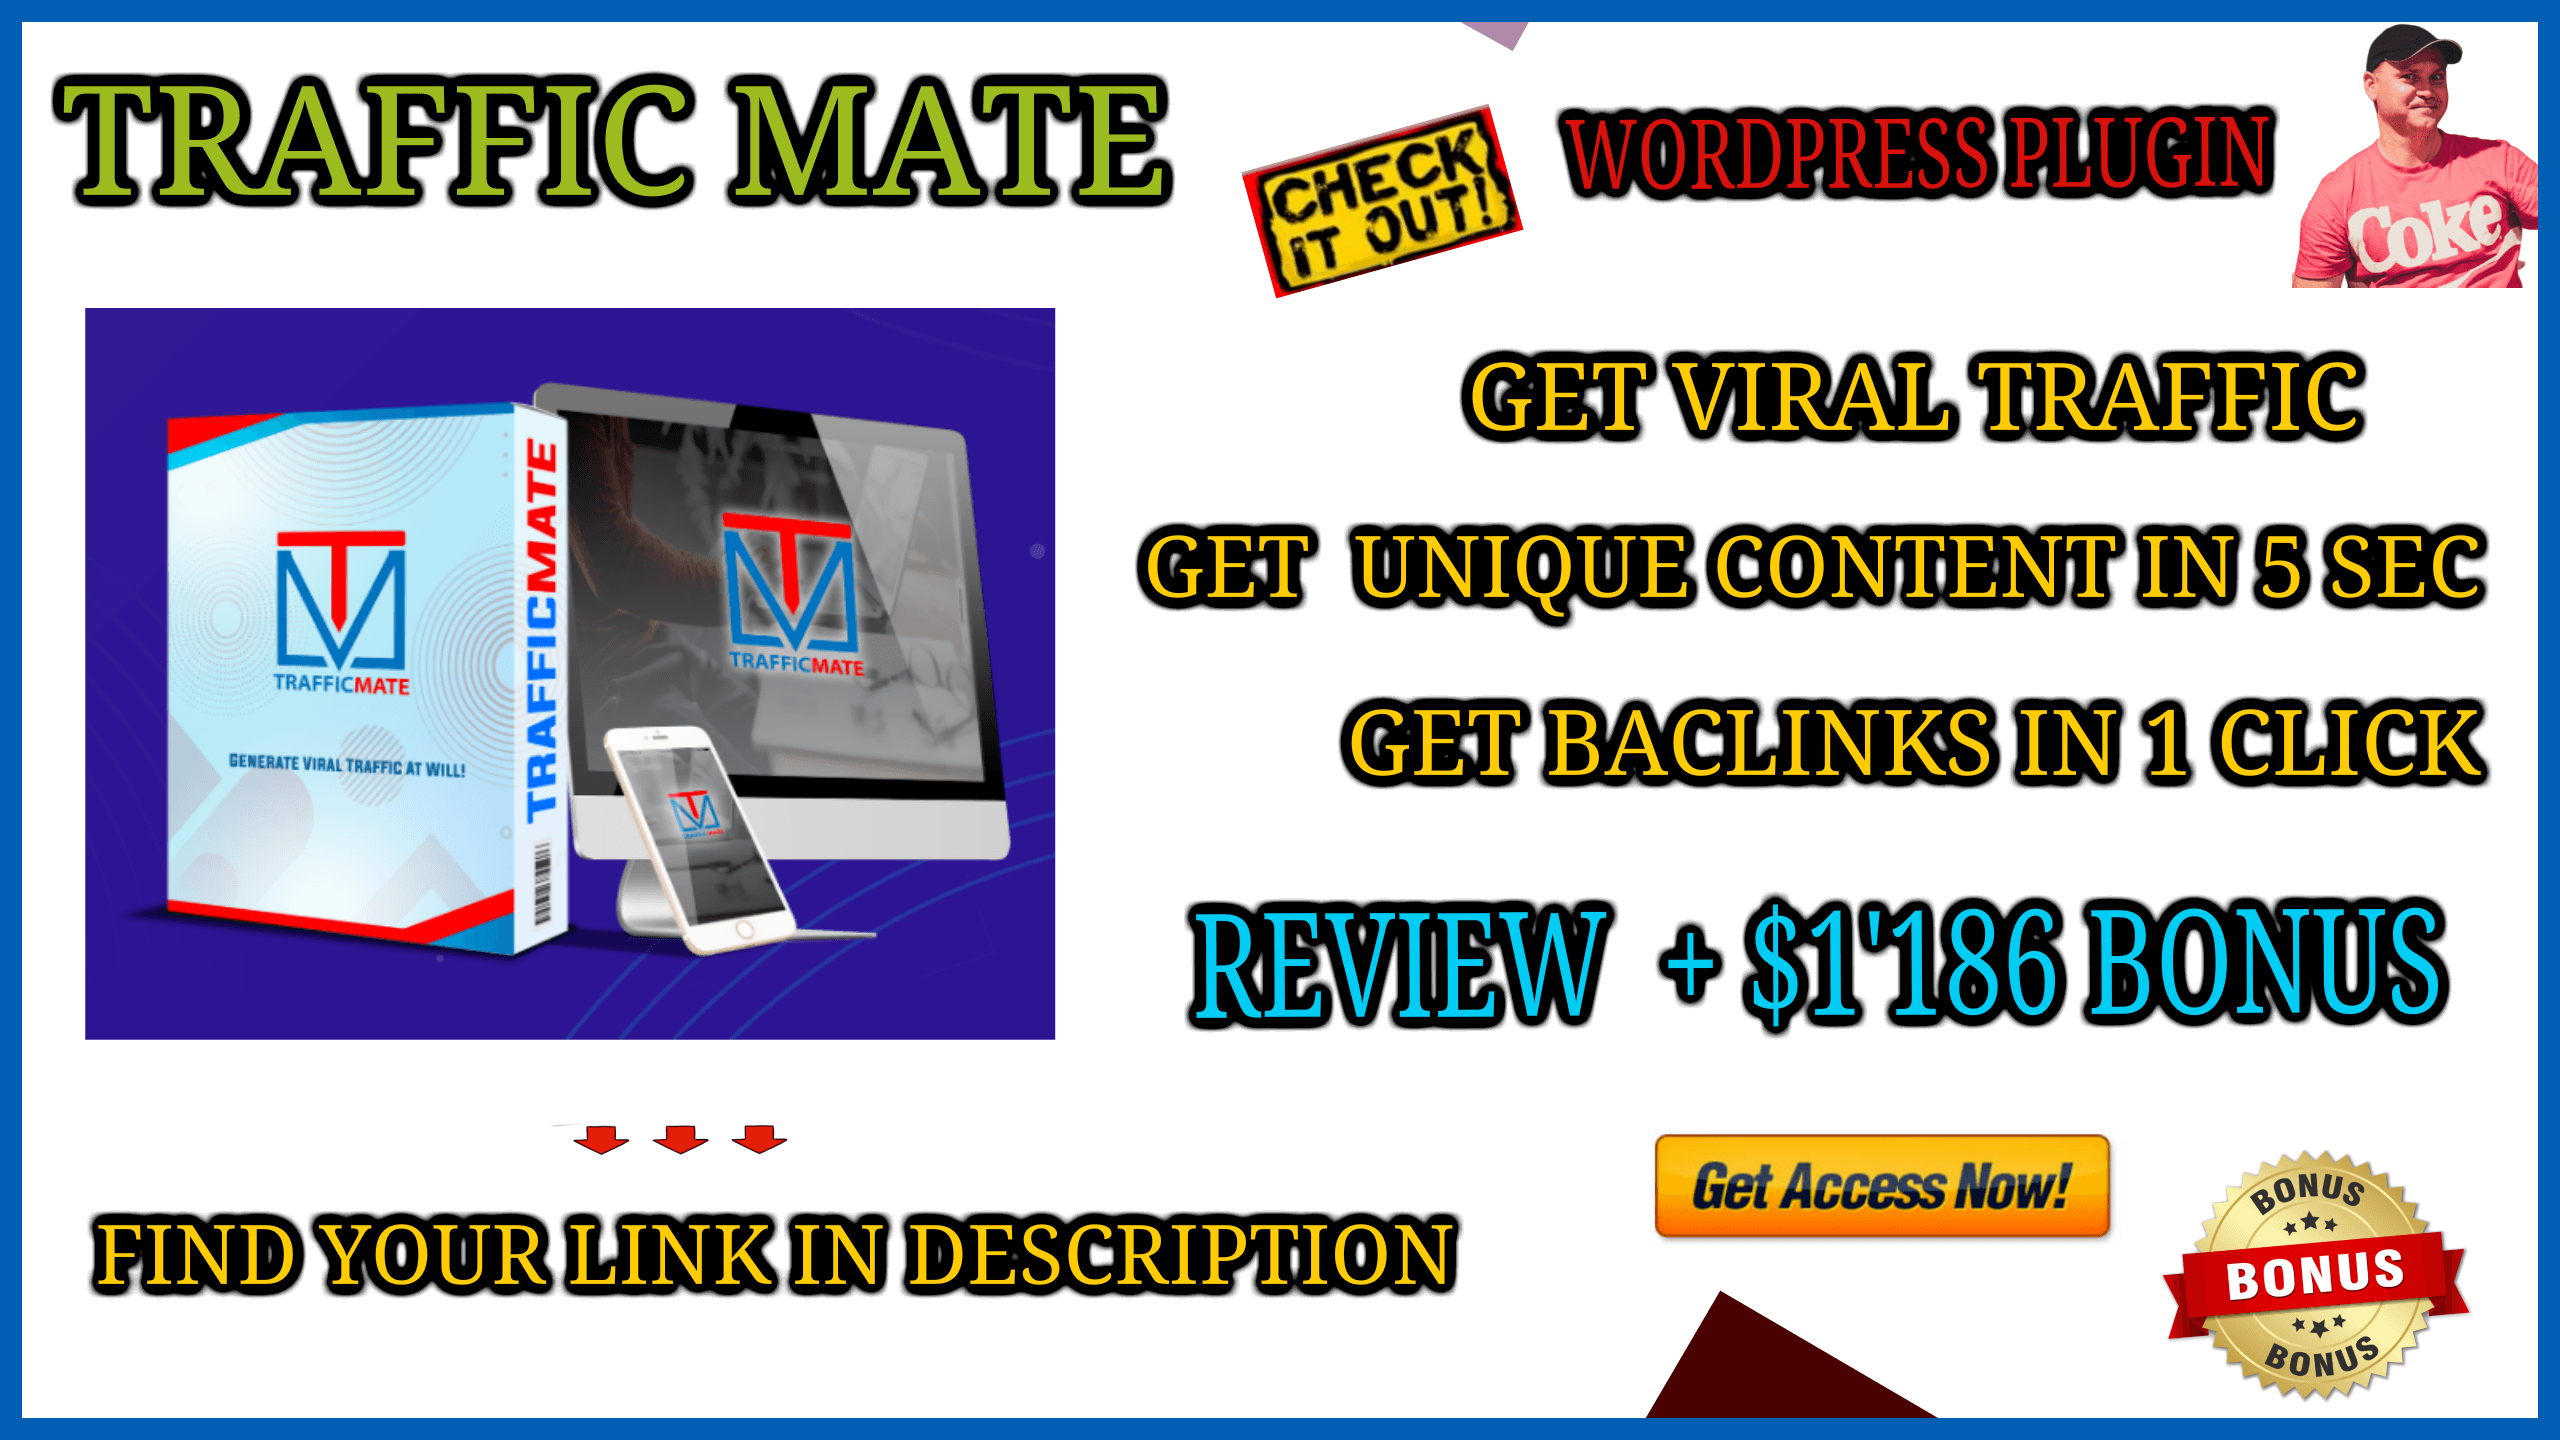 Traffic Mate Review and custom bonus